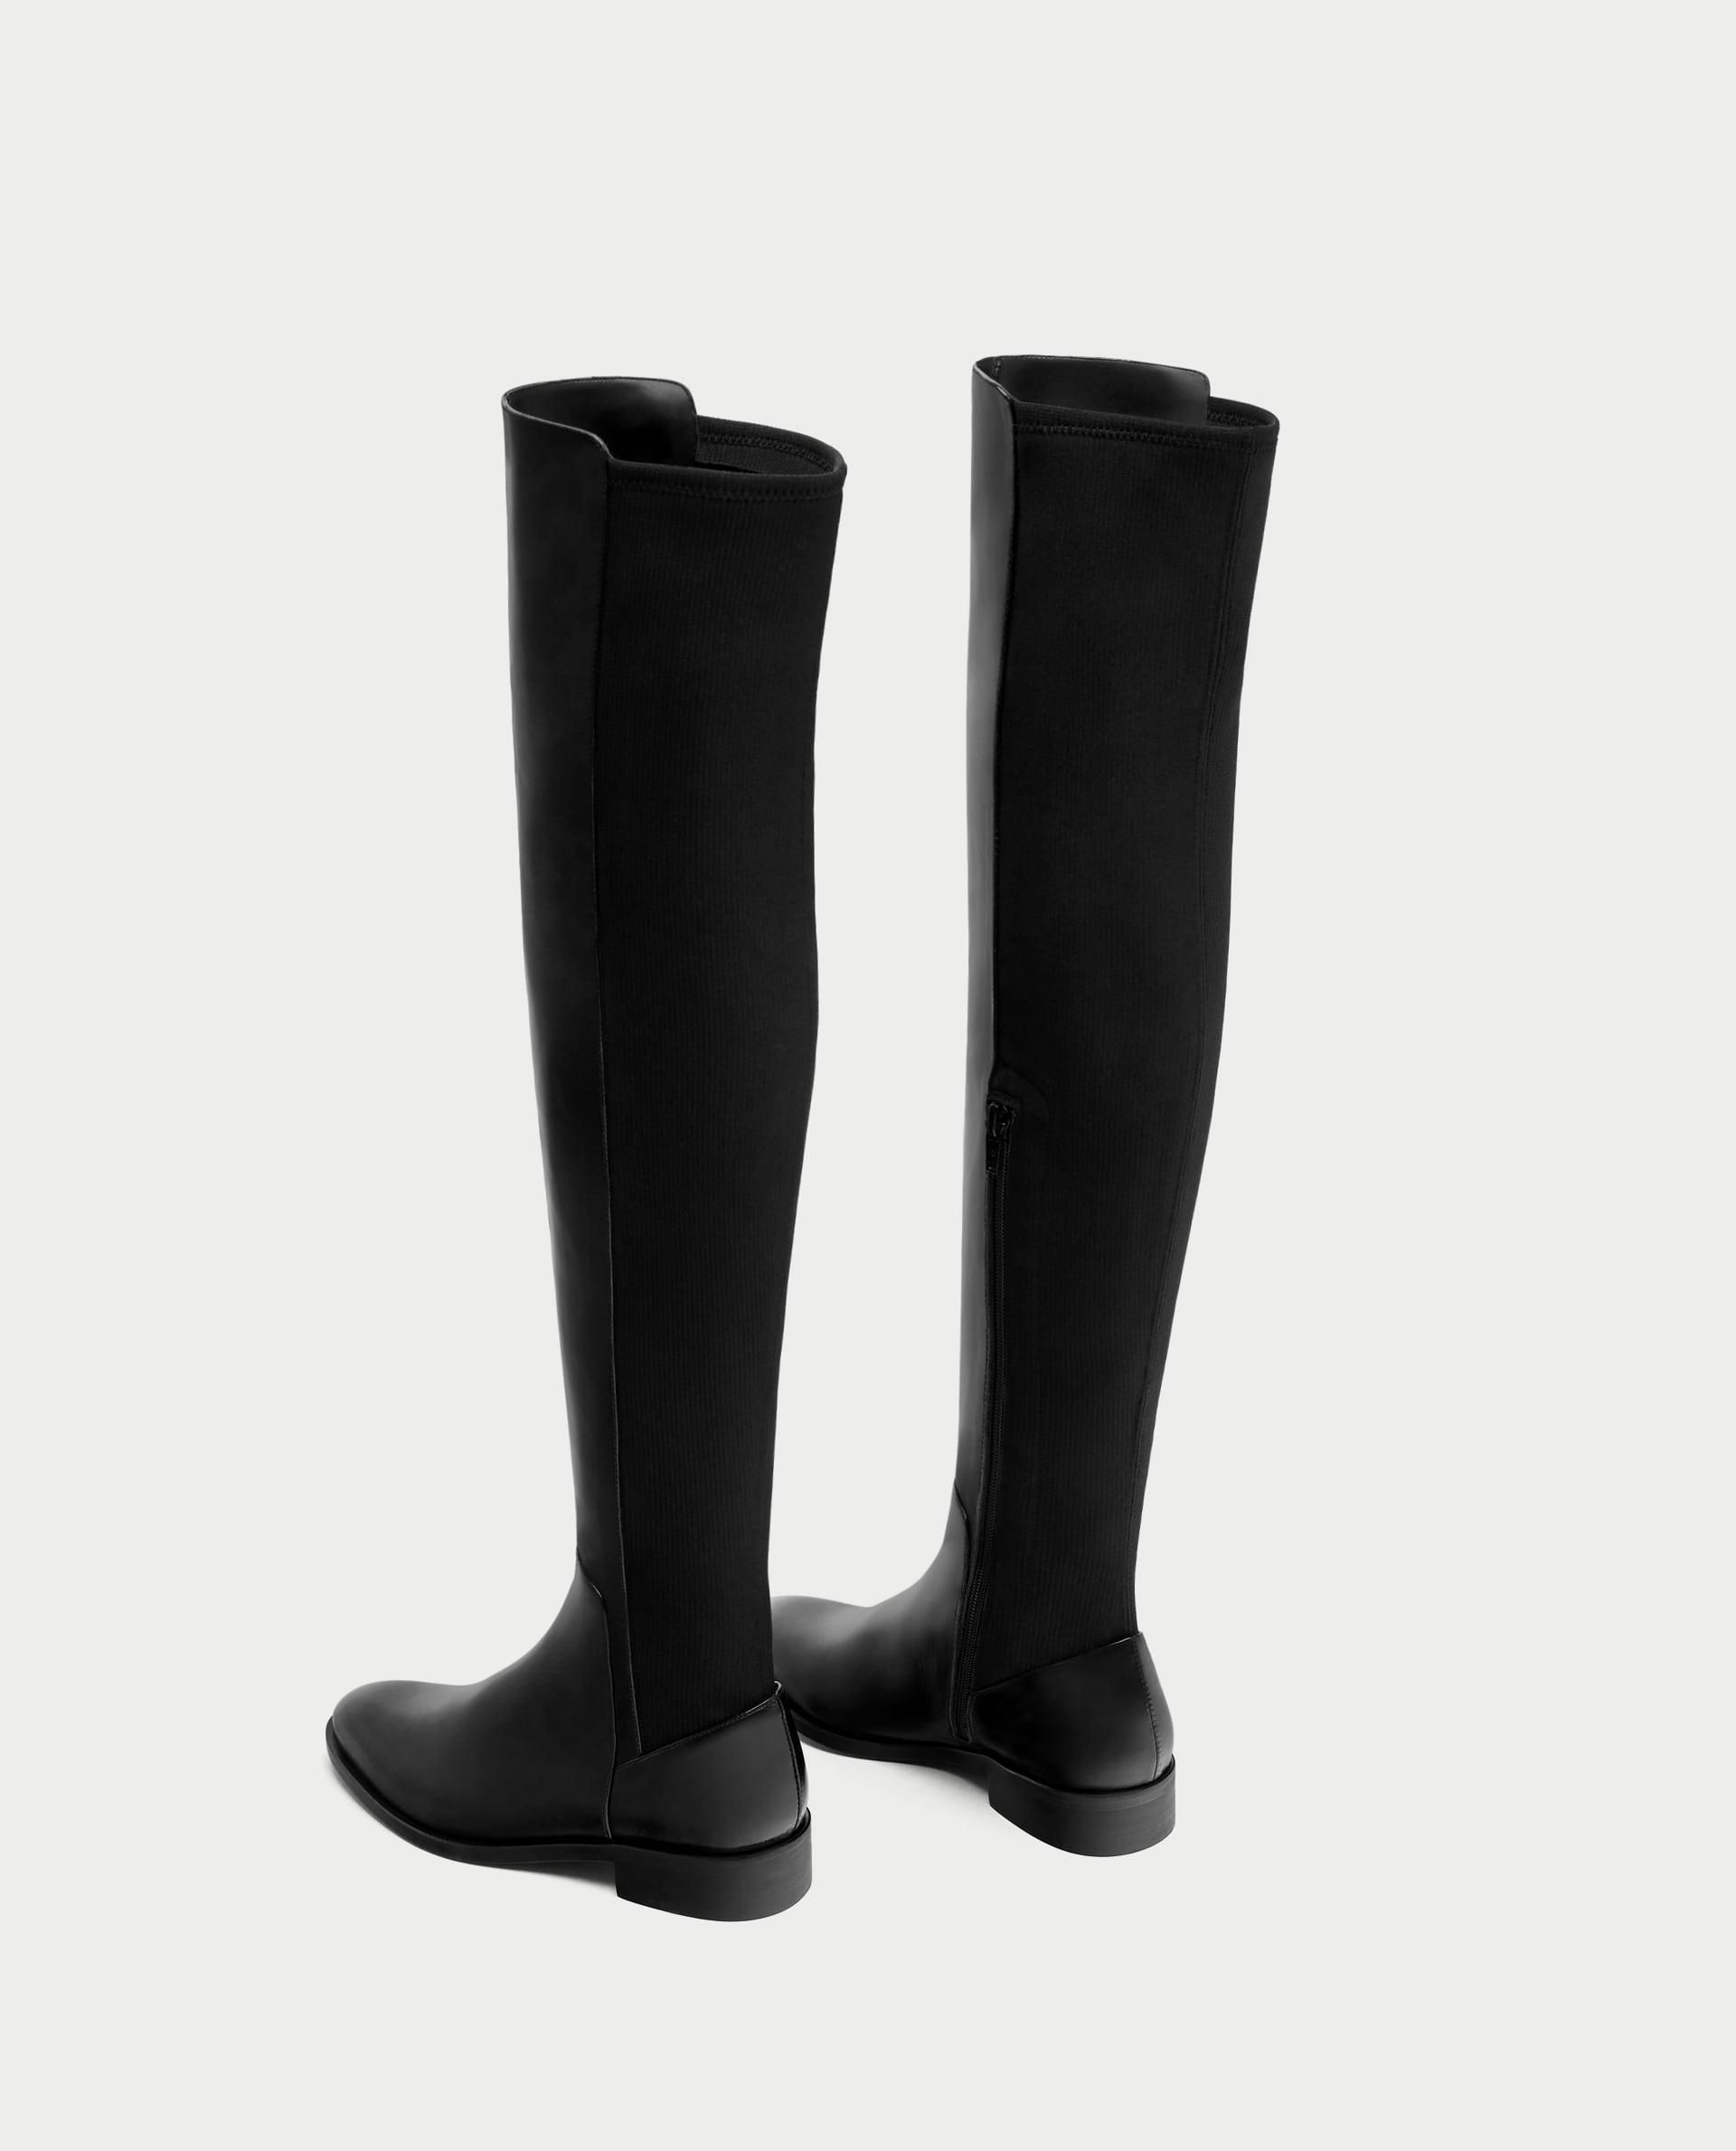 Flat Leather Over-The-Knee Boots // 159